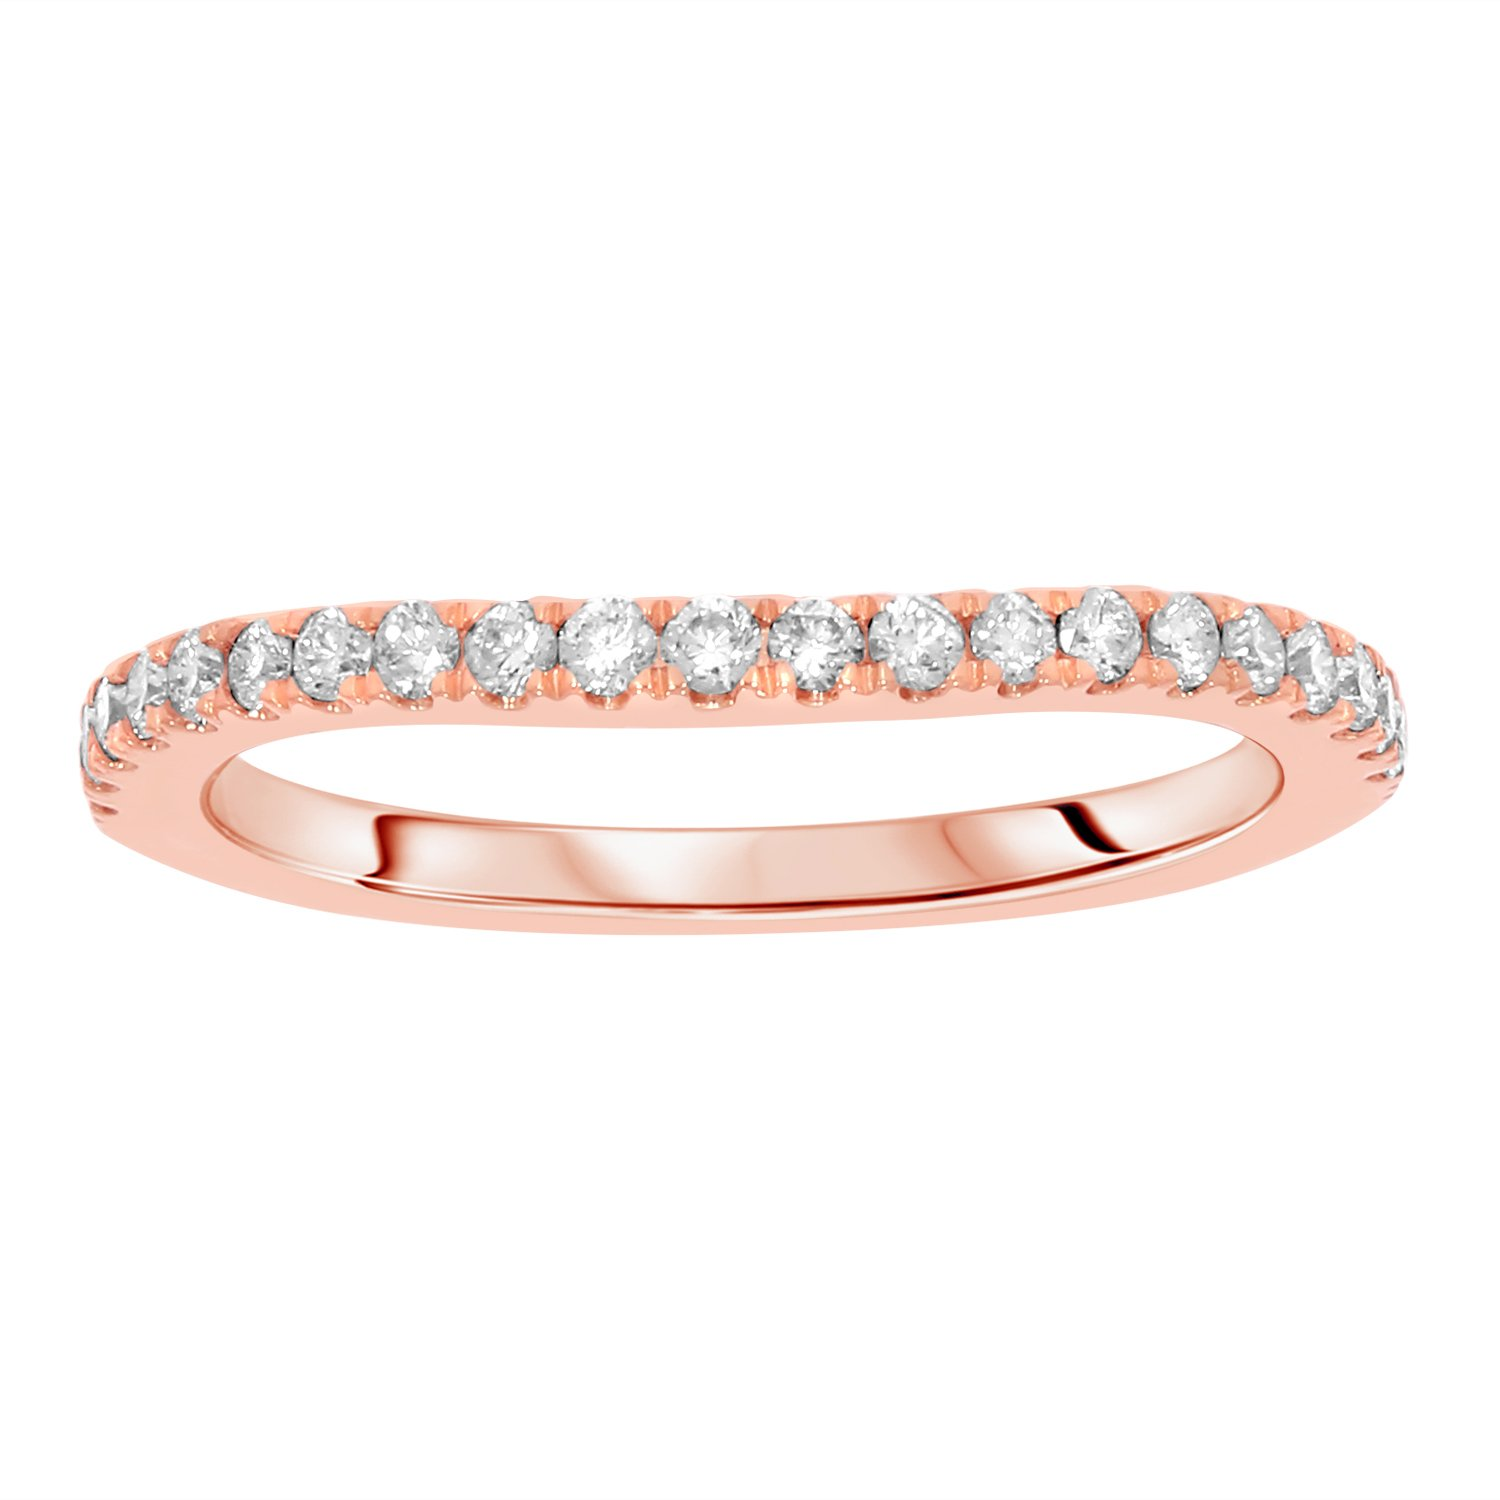 1/4 cttw Round Cut White Real Diamond Wedding Anniversary Band Ring Solid 14k Gold (rose-gold)